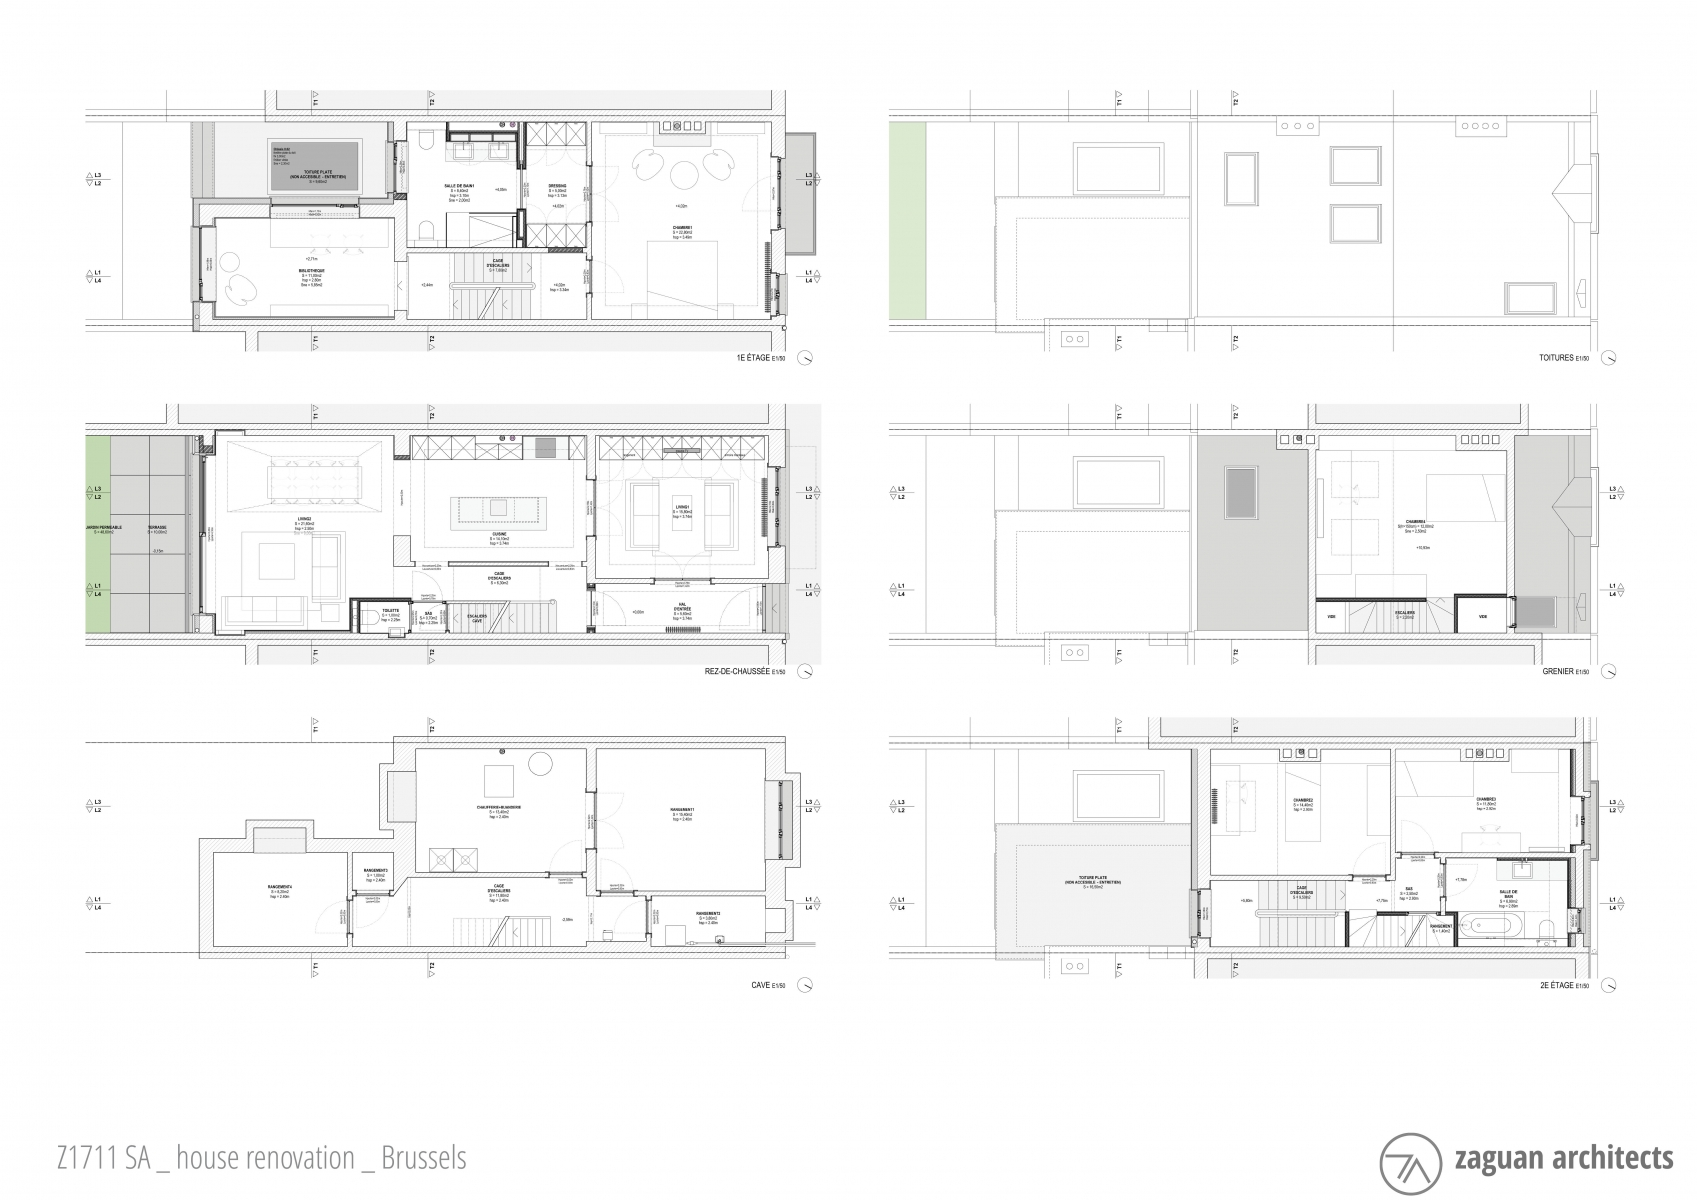 andres gonzalez gil zaguanarchitects house renovation brussels Z1711 03